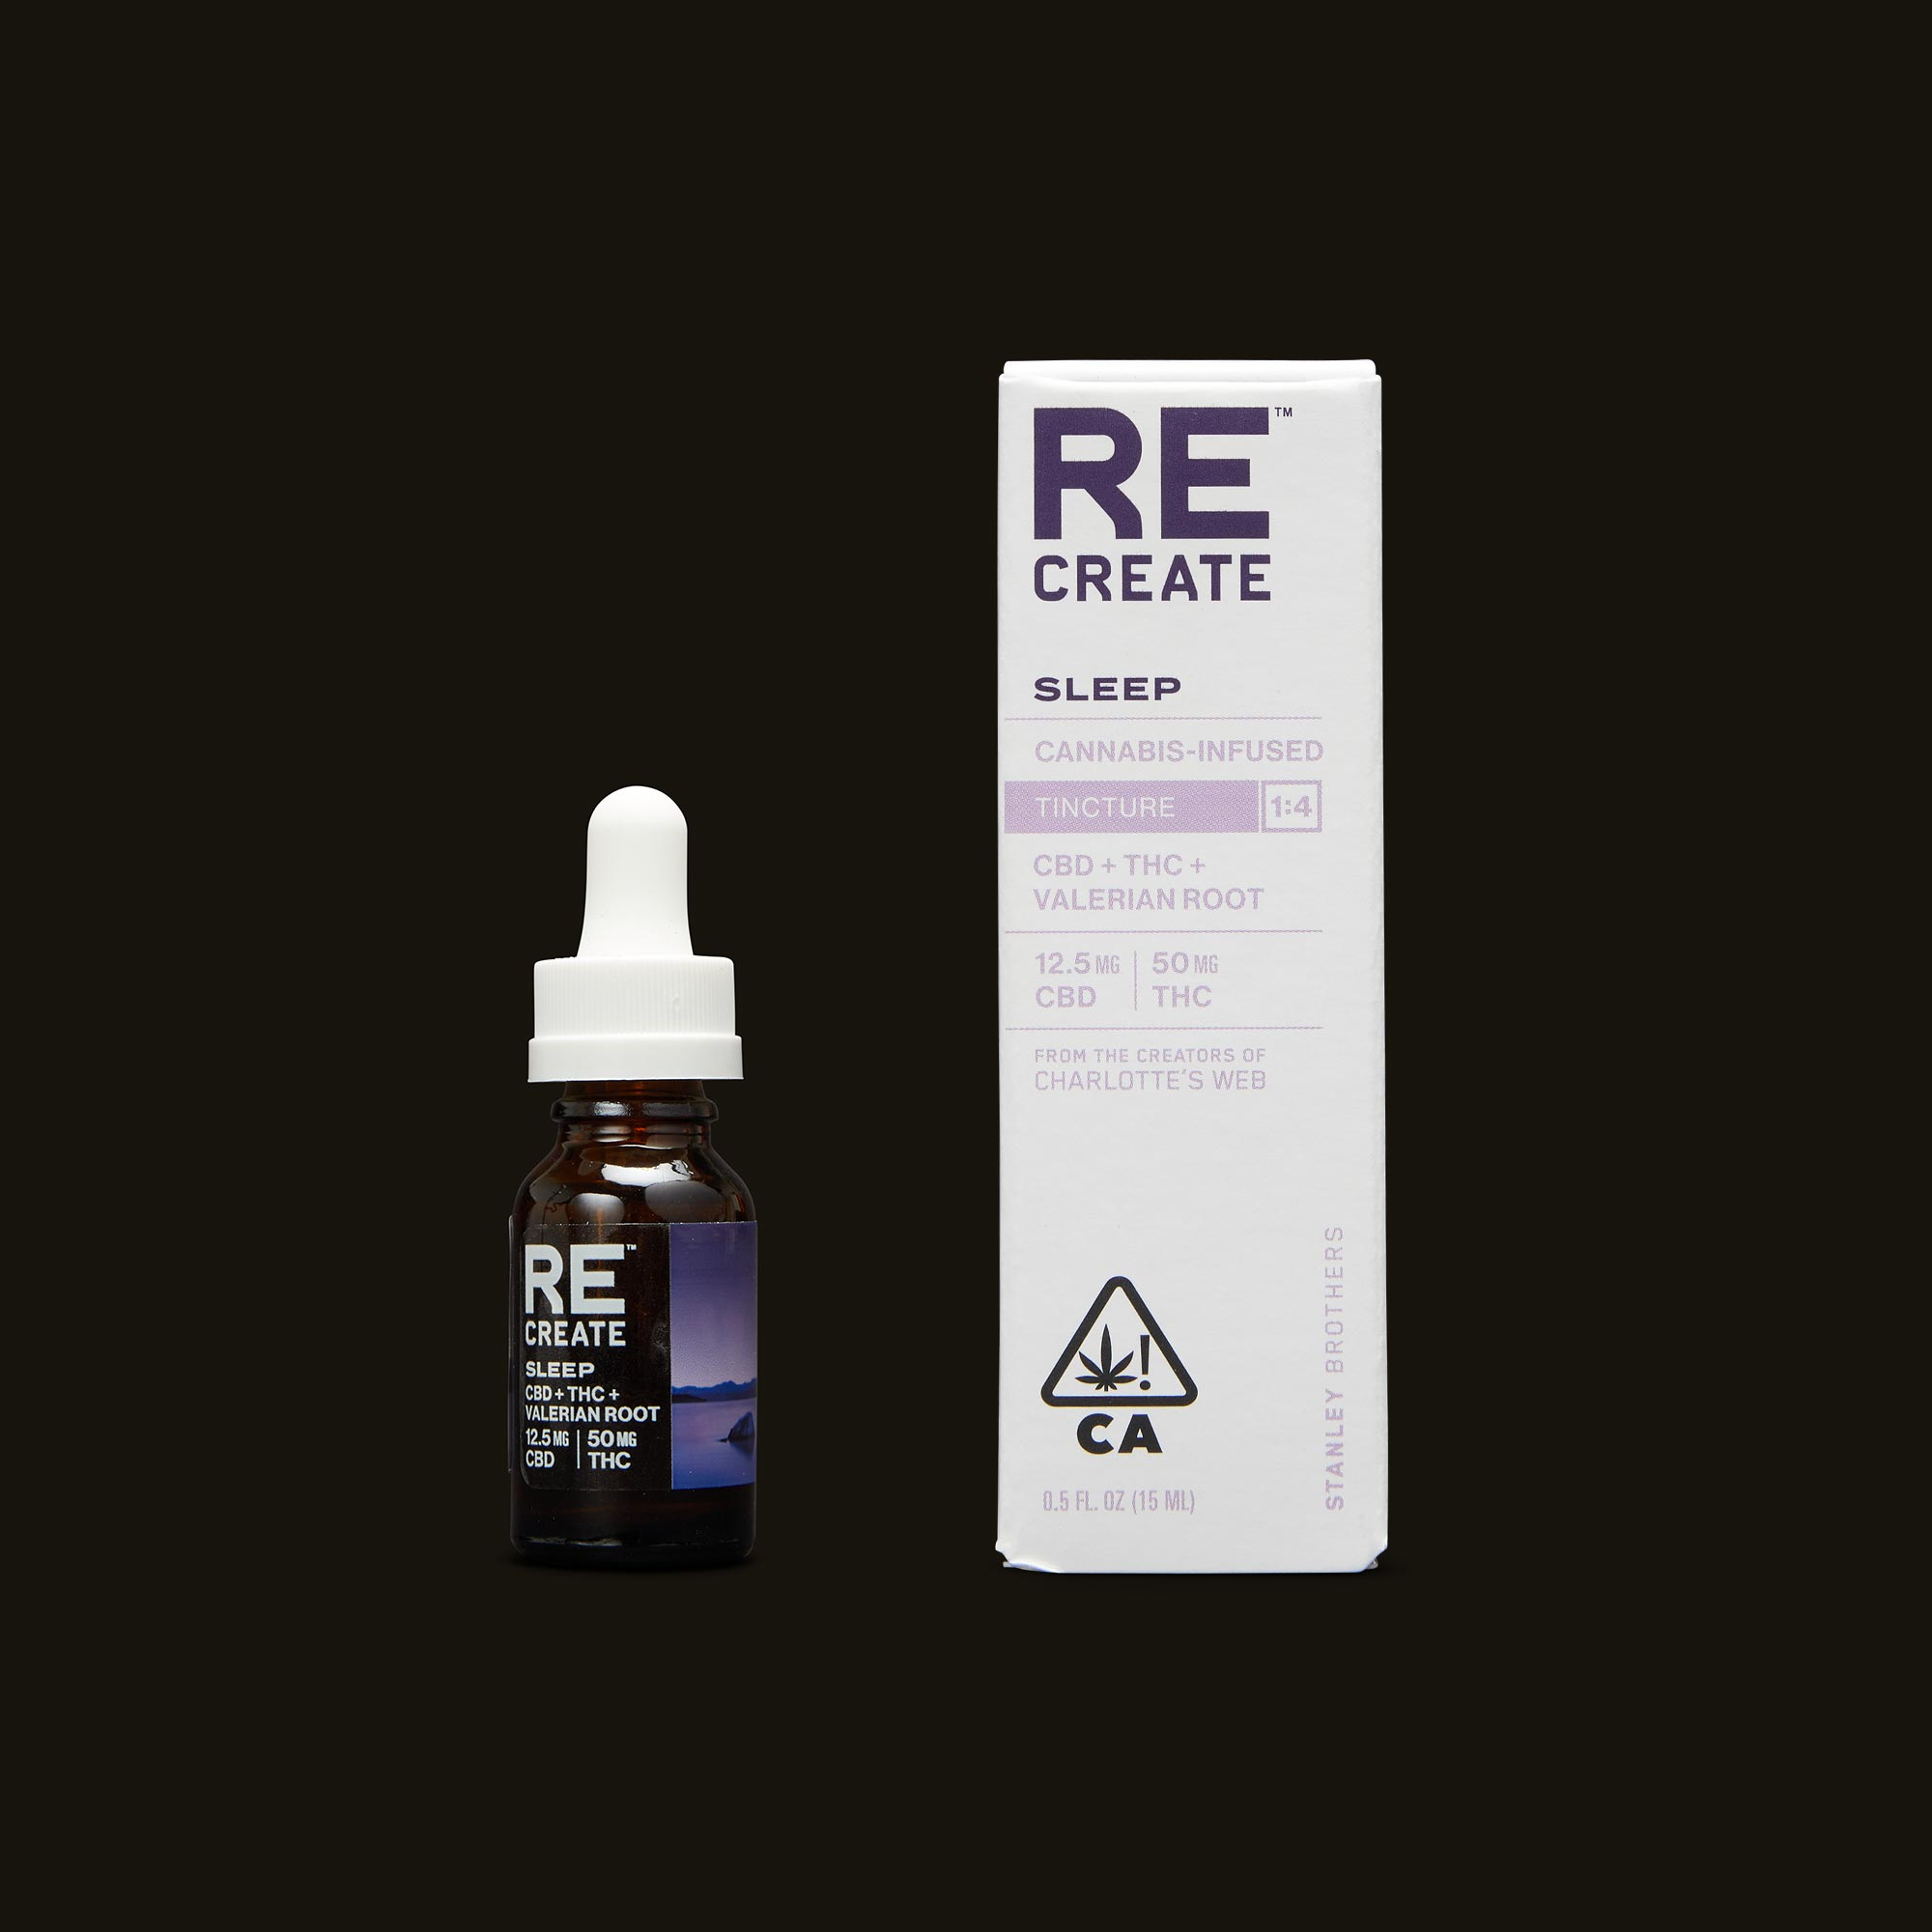 ReCreate Sleep Tincture - 15ml Tincture and Packaging